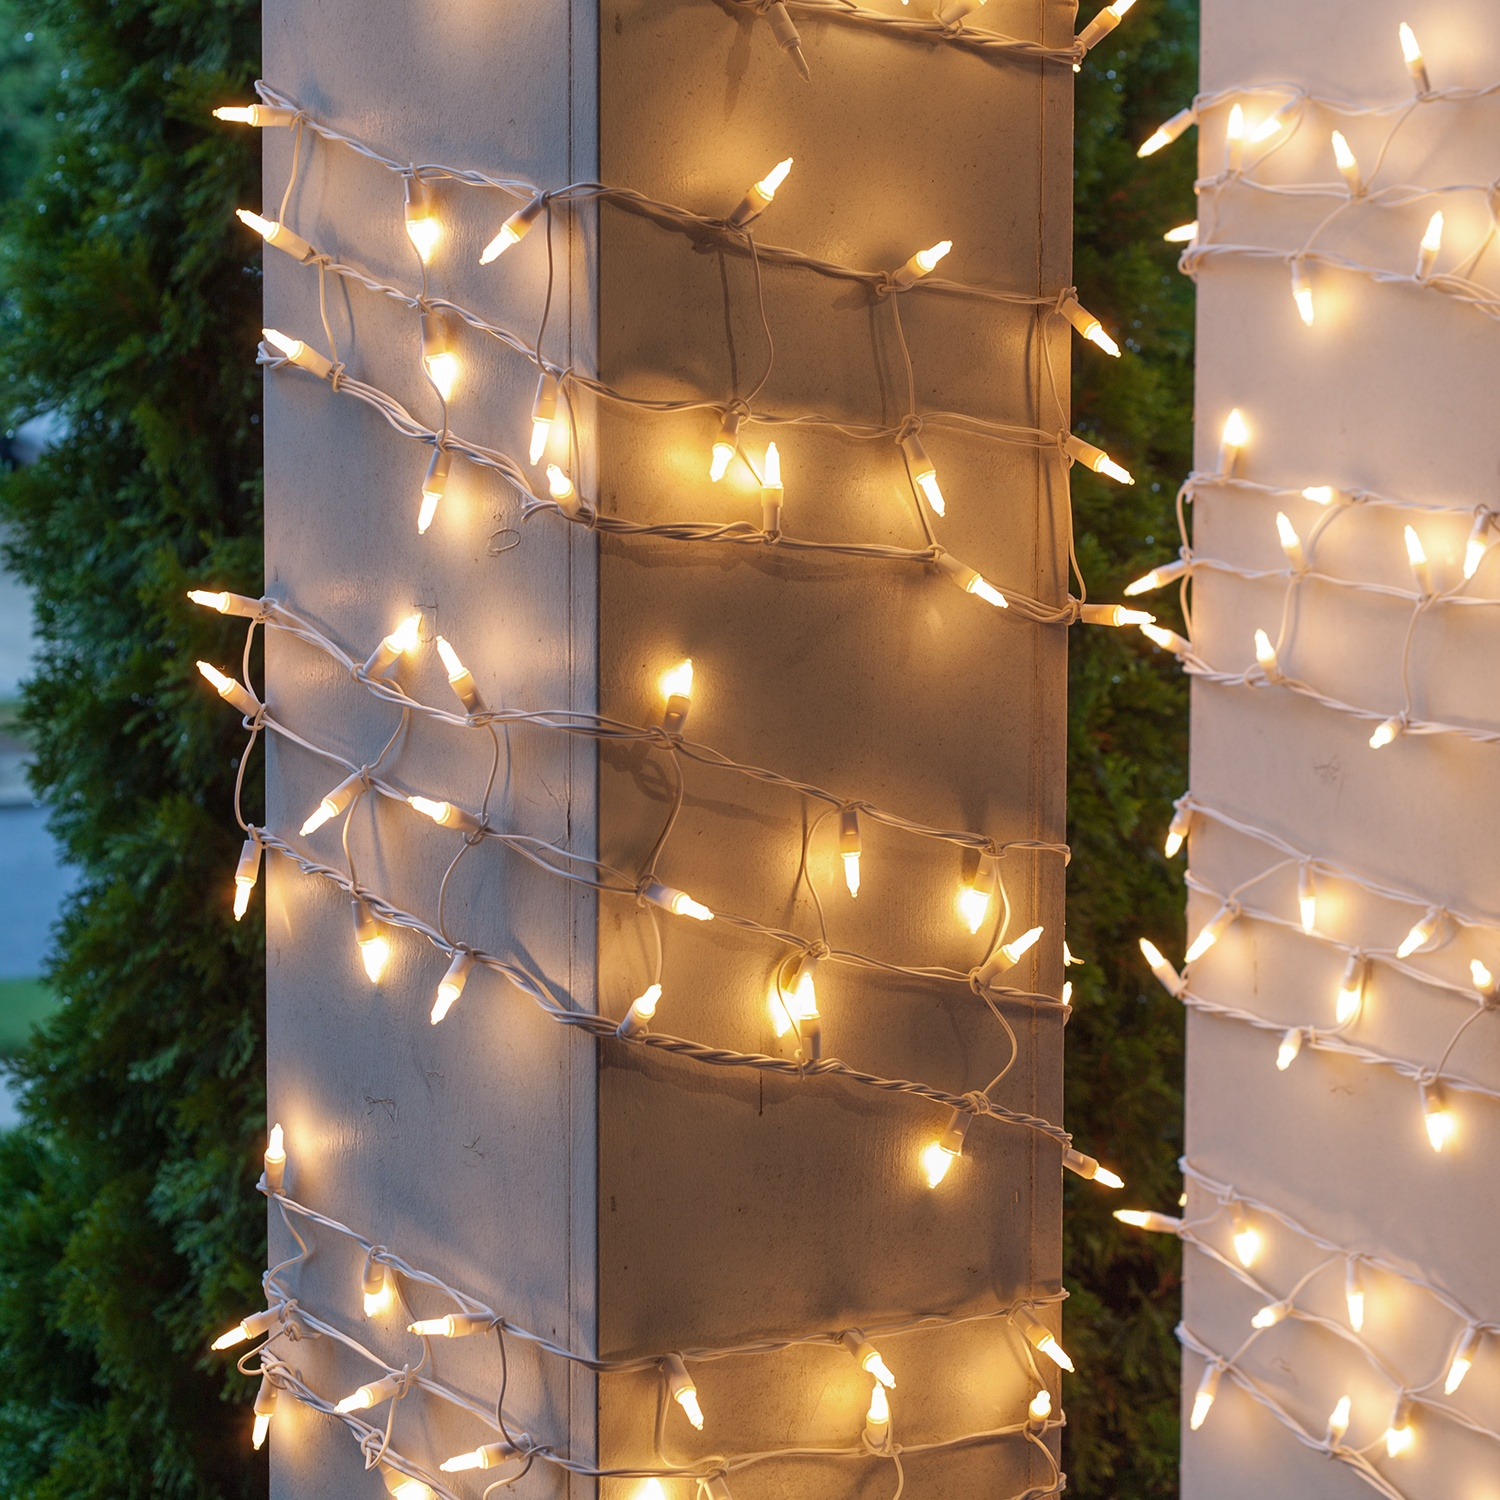 Christmas Net Lights - 6u0026quot; W x 15u0026#39; H Column Wrap - 150 White Frost Lights, White Wire